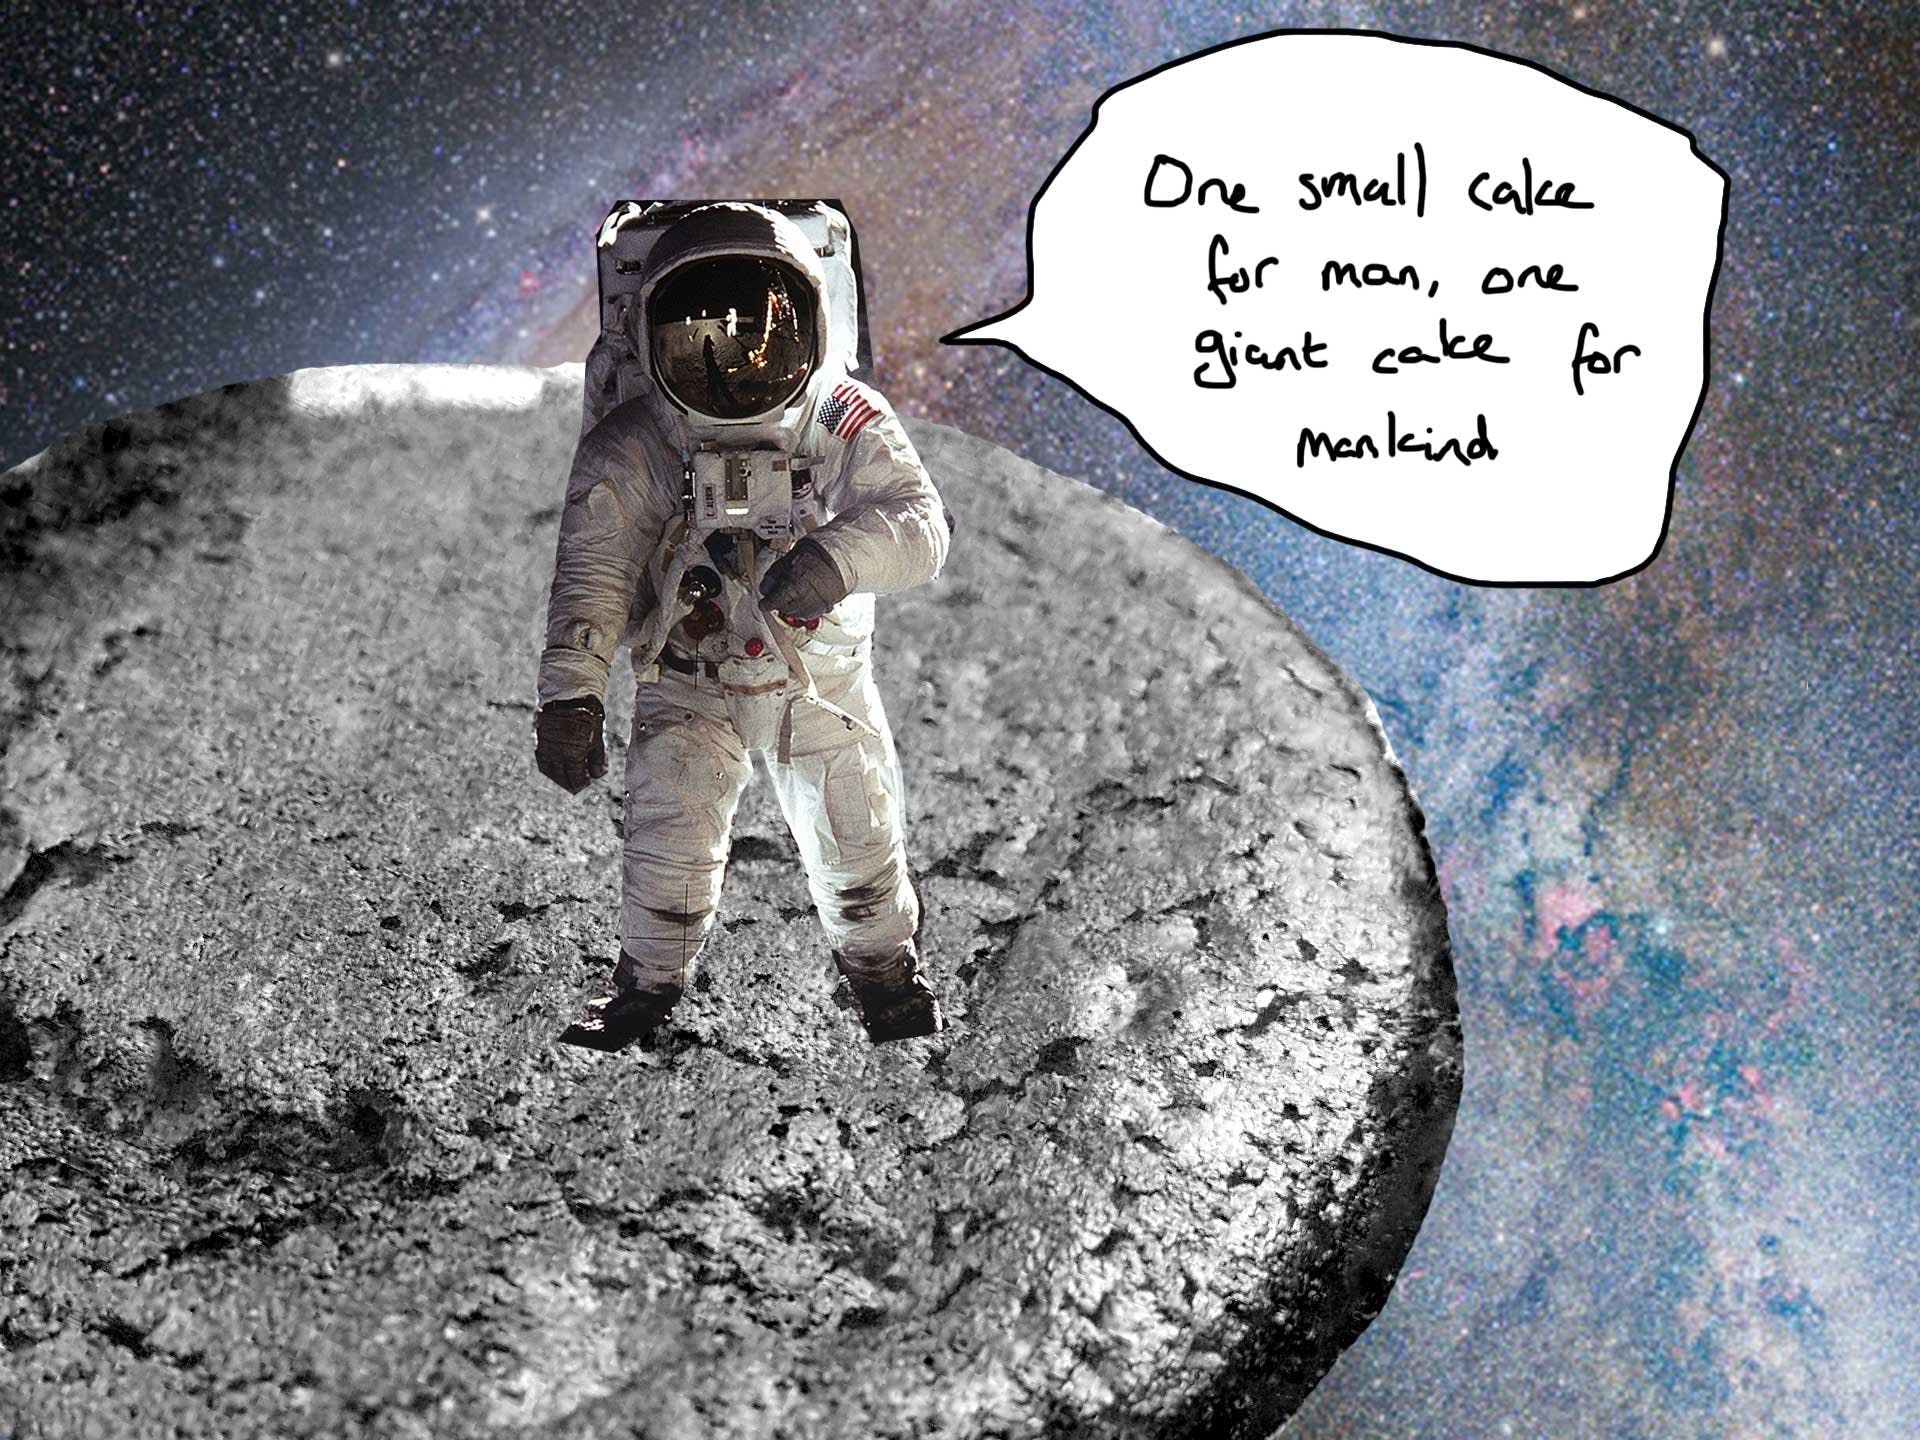 An astronaut walking on the cake